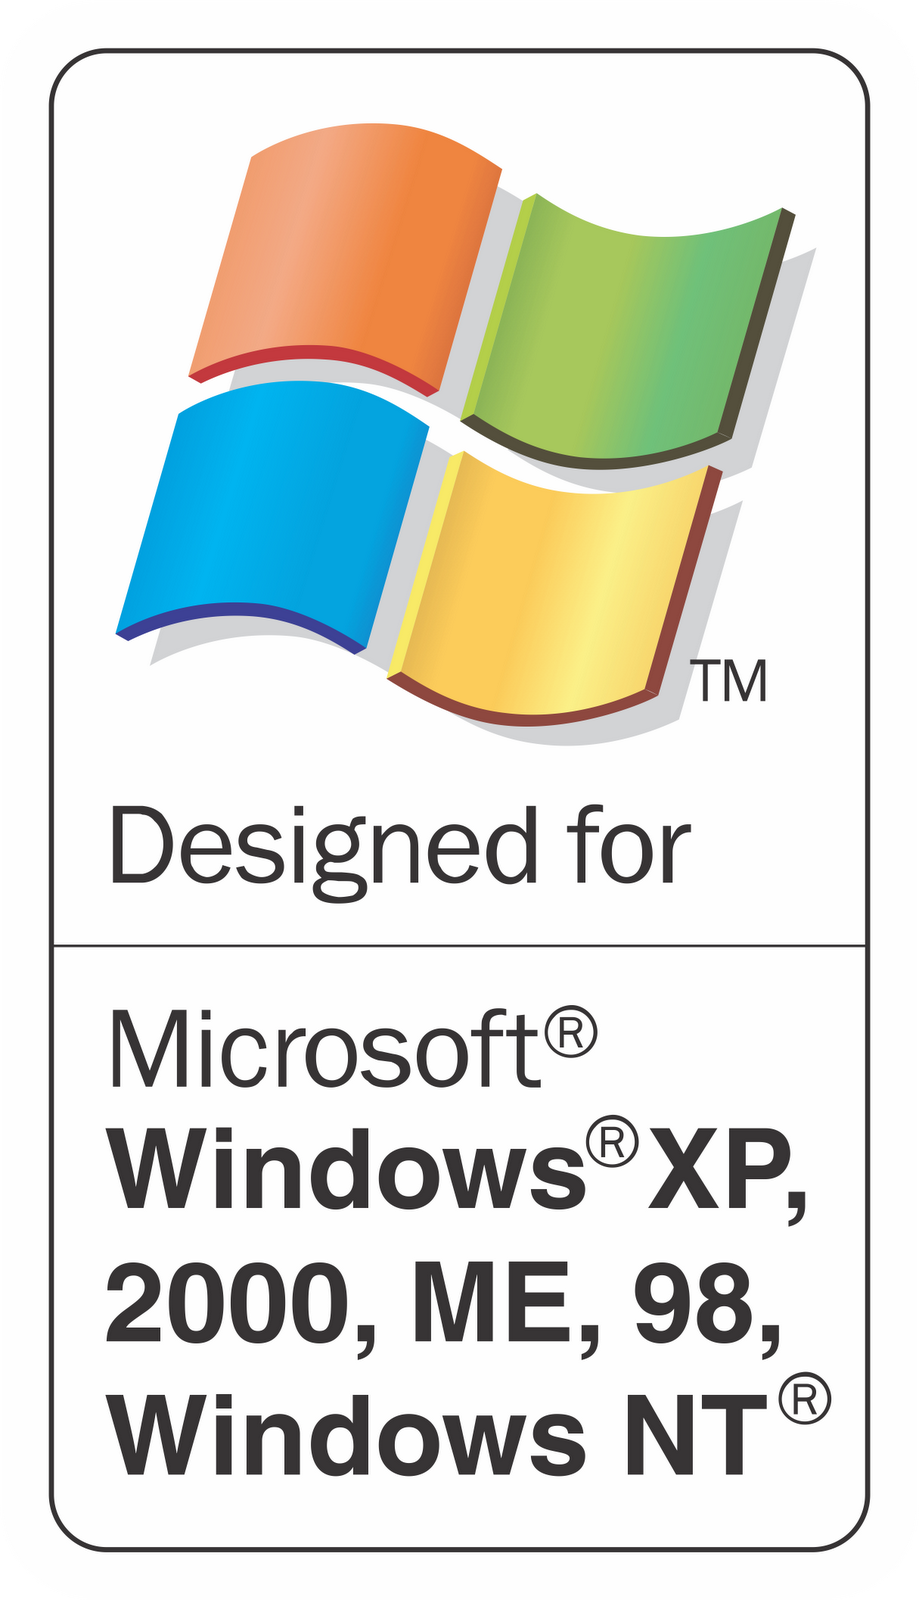 Designed for Windows XP, 2000, ME, 98, Windows NT.png